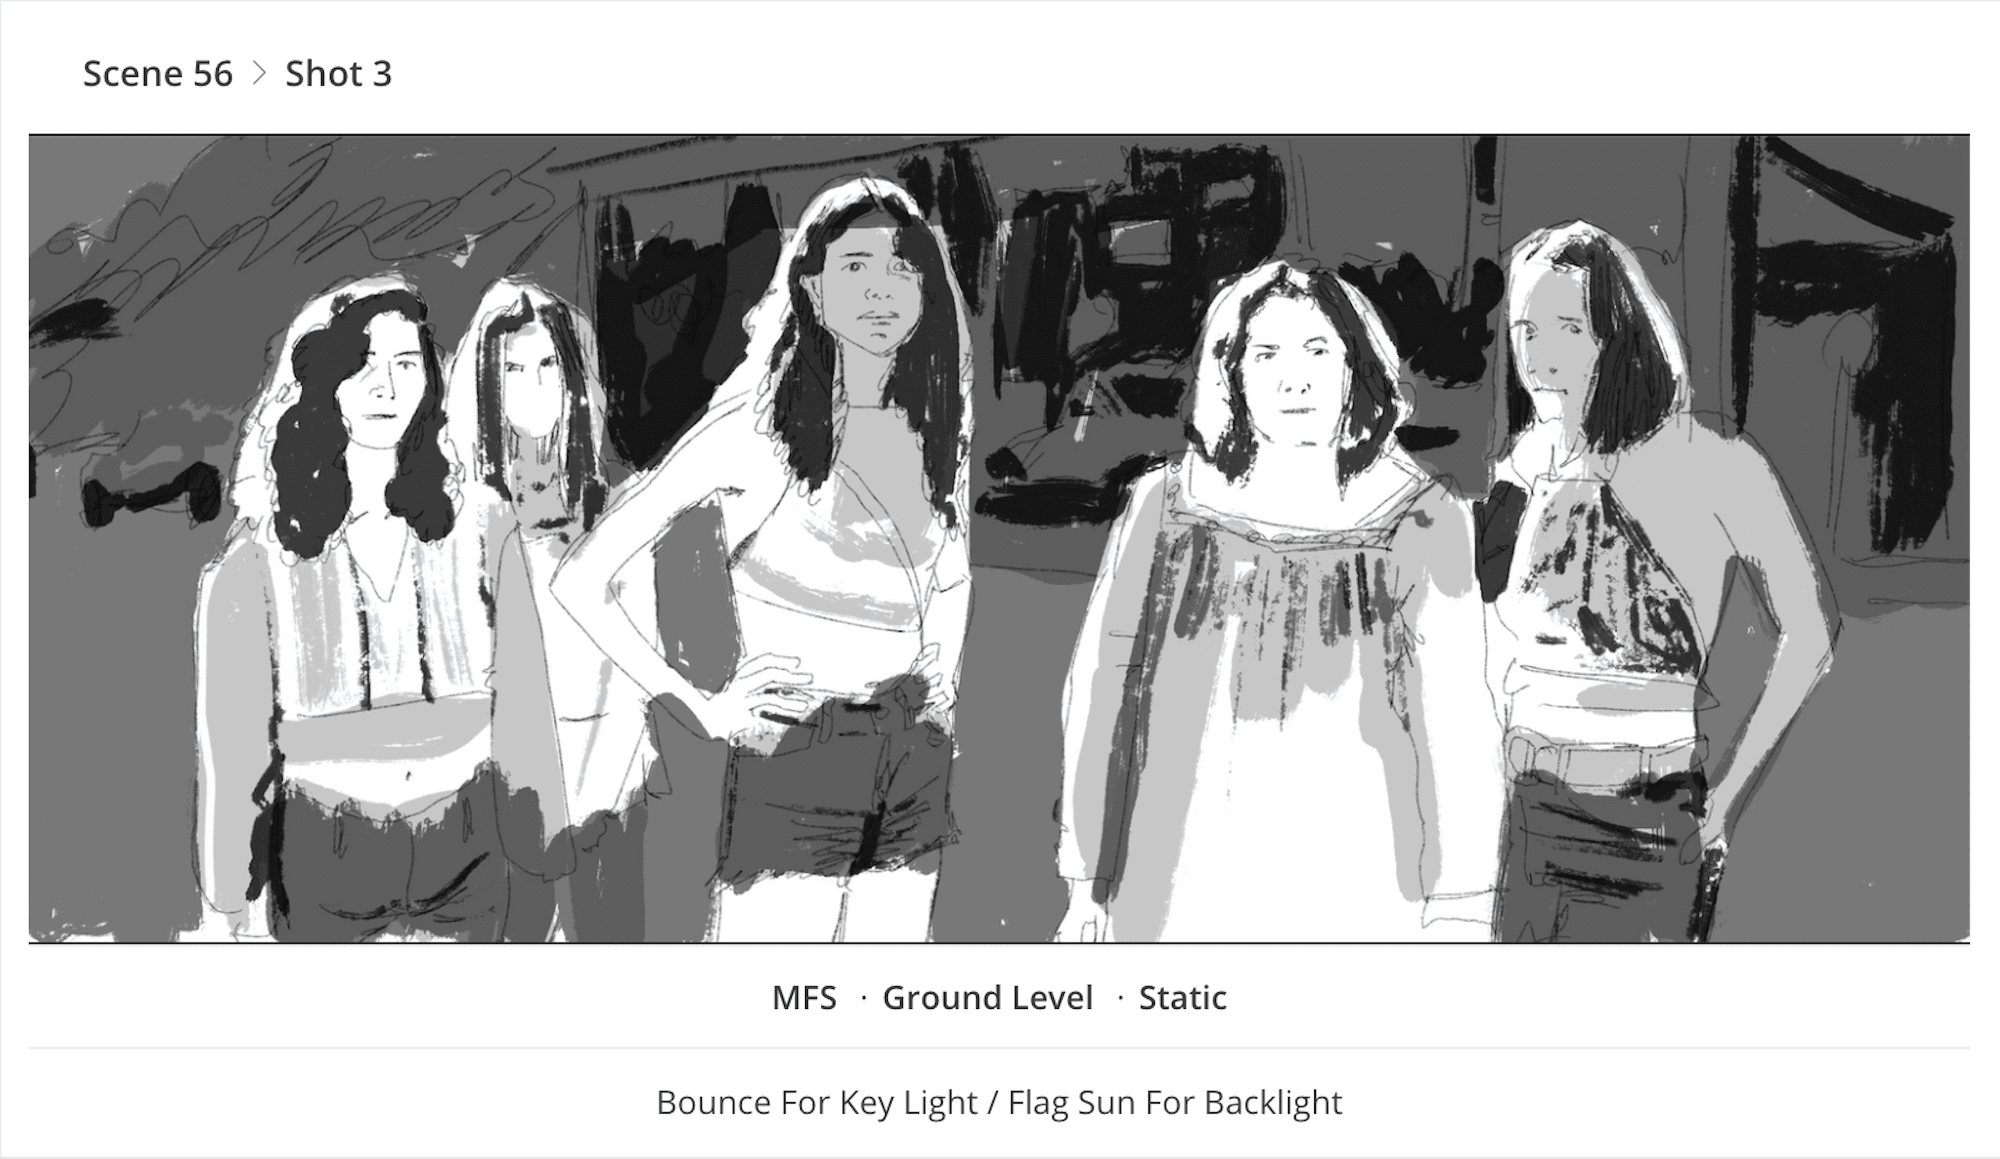 3 Point Lighting Guide - Once Upon a Time in Hollywood - Hippie Group Storyboard - StudioBinder